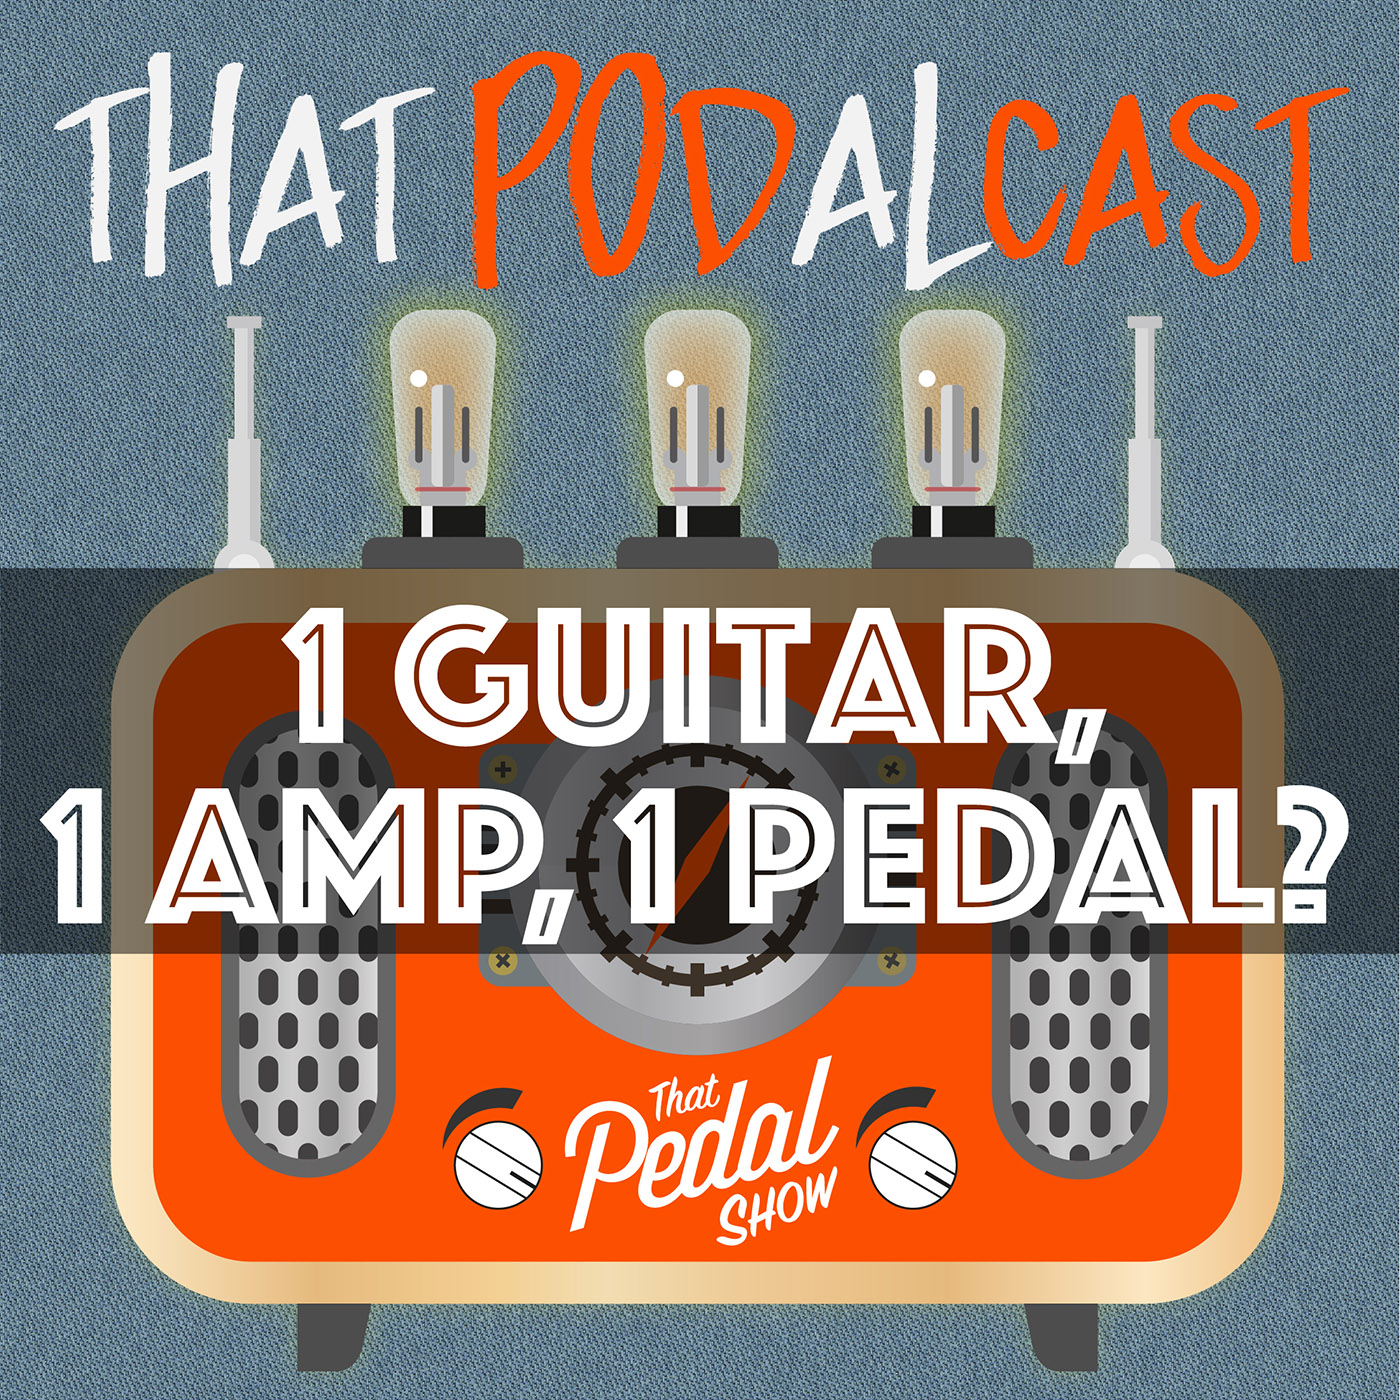 Only One Guitar, One Amp And One Pedal?